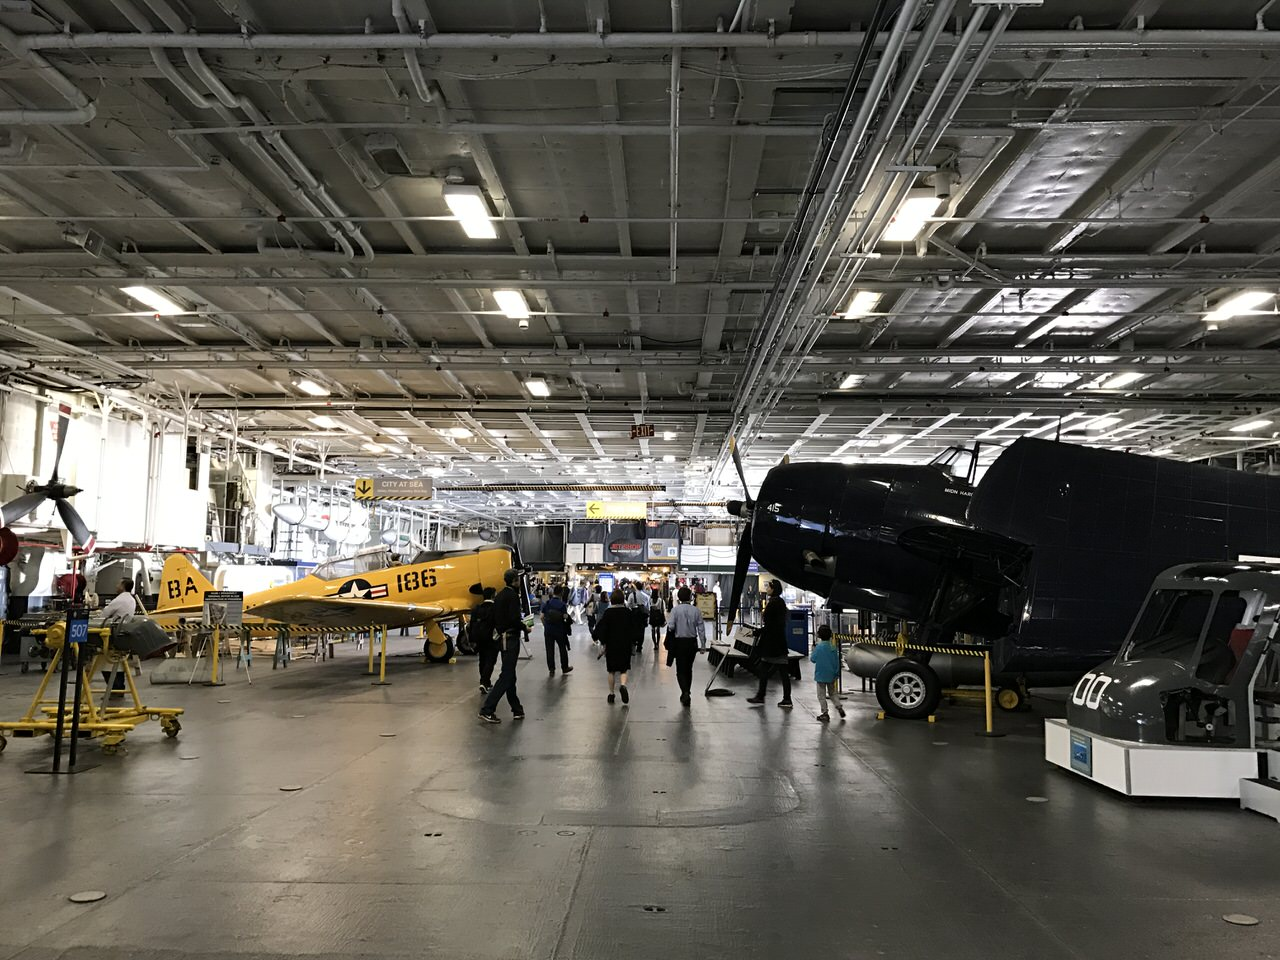 Uss midway museum 0561